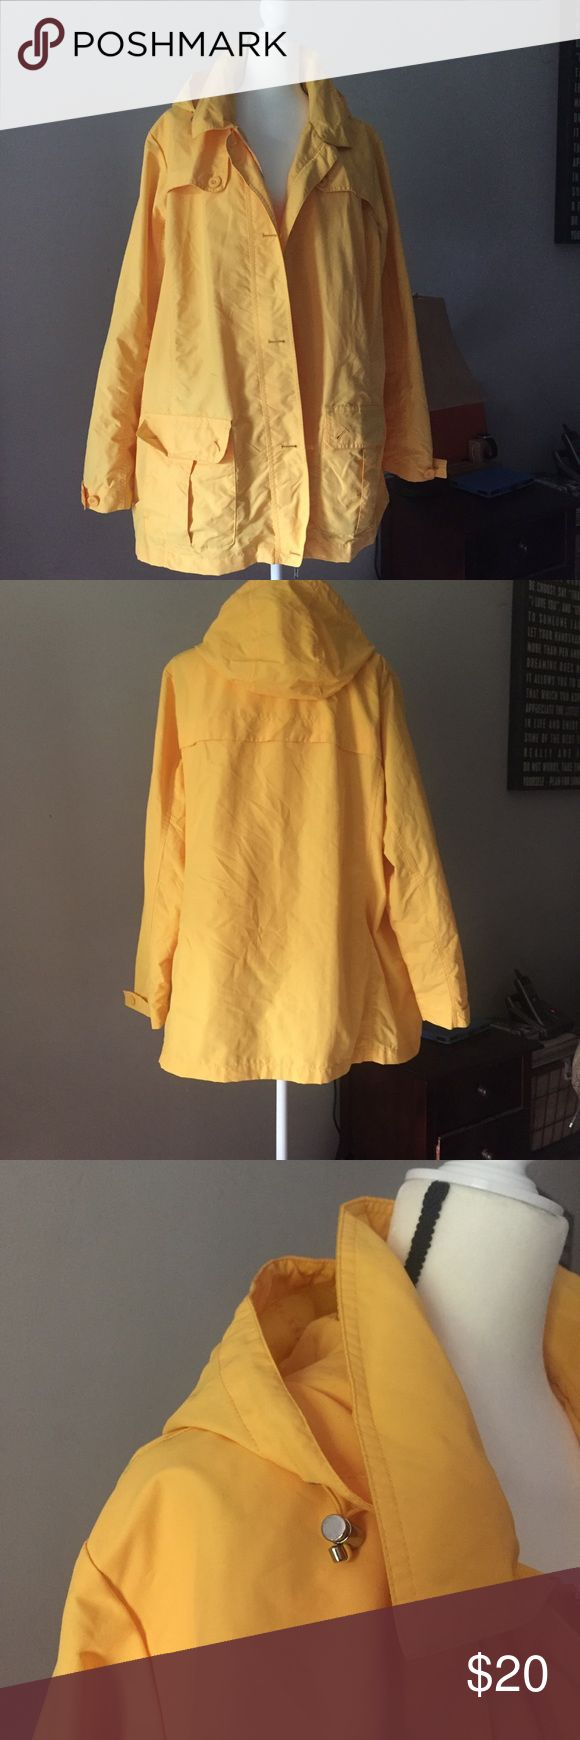 Lands End lined yellow jacket Cute yellow jacket from Lands End, lightweight and breathable. Light mesh lining and inside pocket. Zips and buttons. Hood. This would be perfect for a drizzly day, but not a rain storm ⛈ label has been cut because it's from the outlet. Fun timeless piece! Lands' End Jackets & Coats Utility Jackets